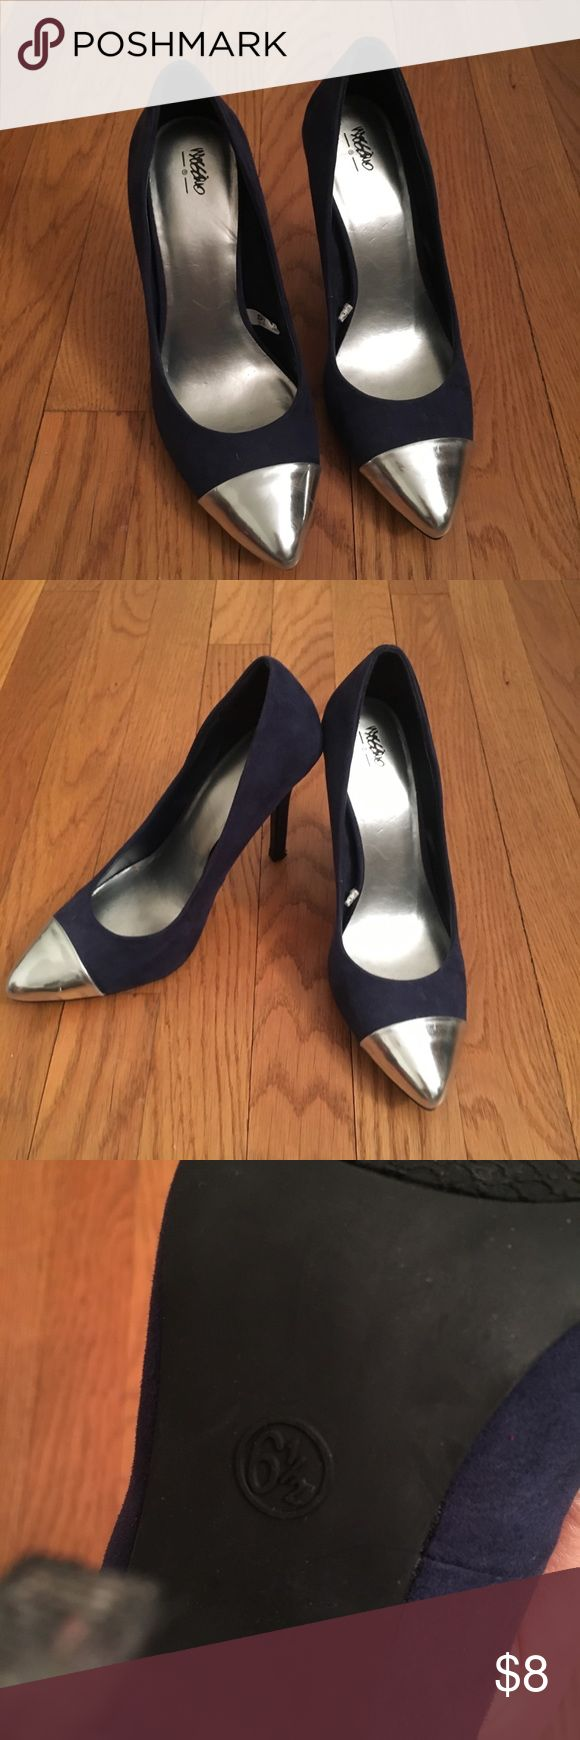 Navy with sliver heels Pointy toe in navy and sliver heels. Only tried on in the house Missoni for Target Shoes Heels